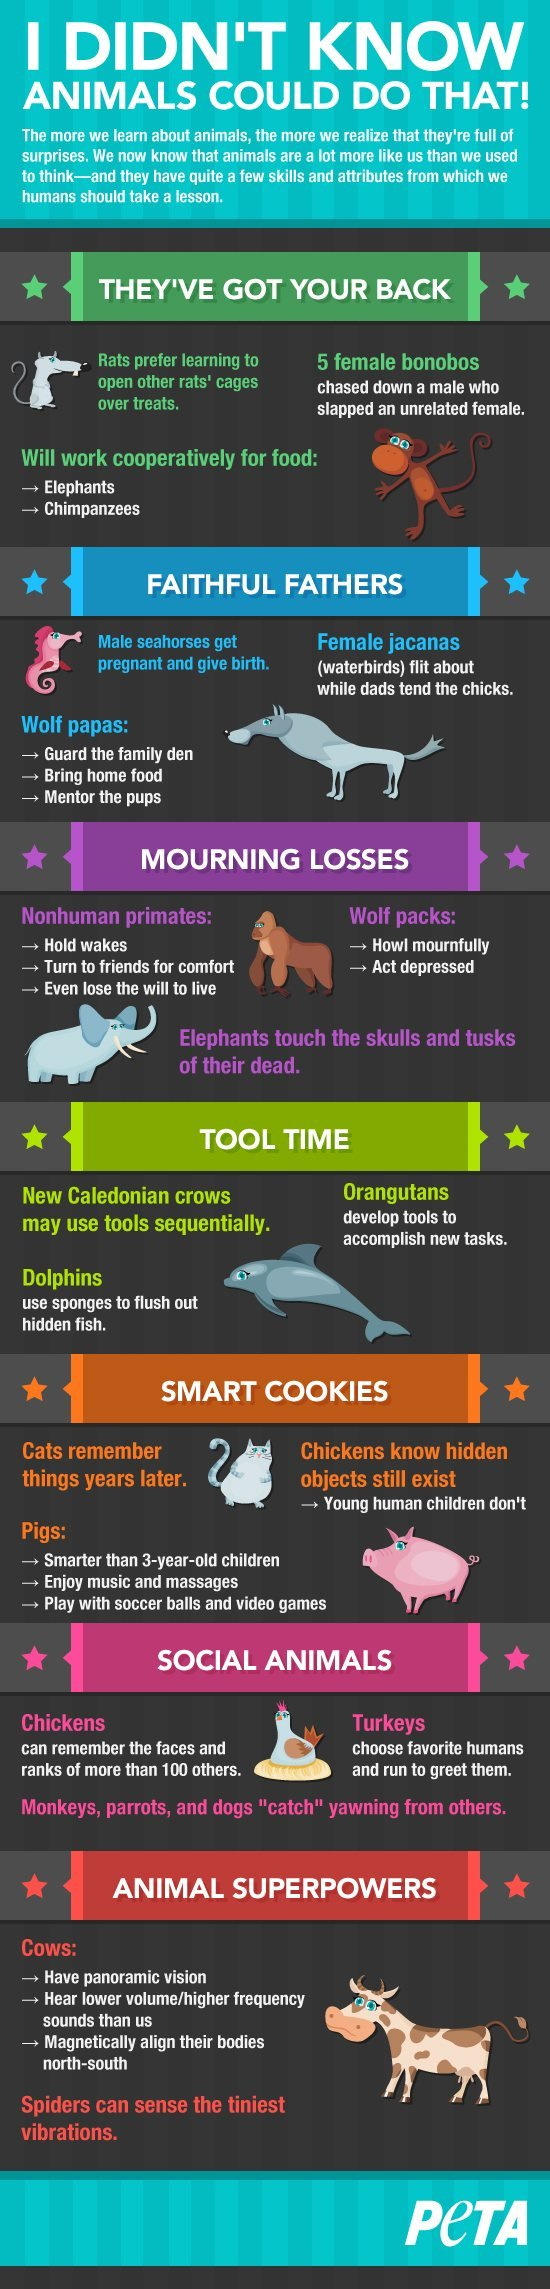 i-didn't-know-animals-infographic